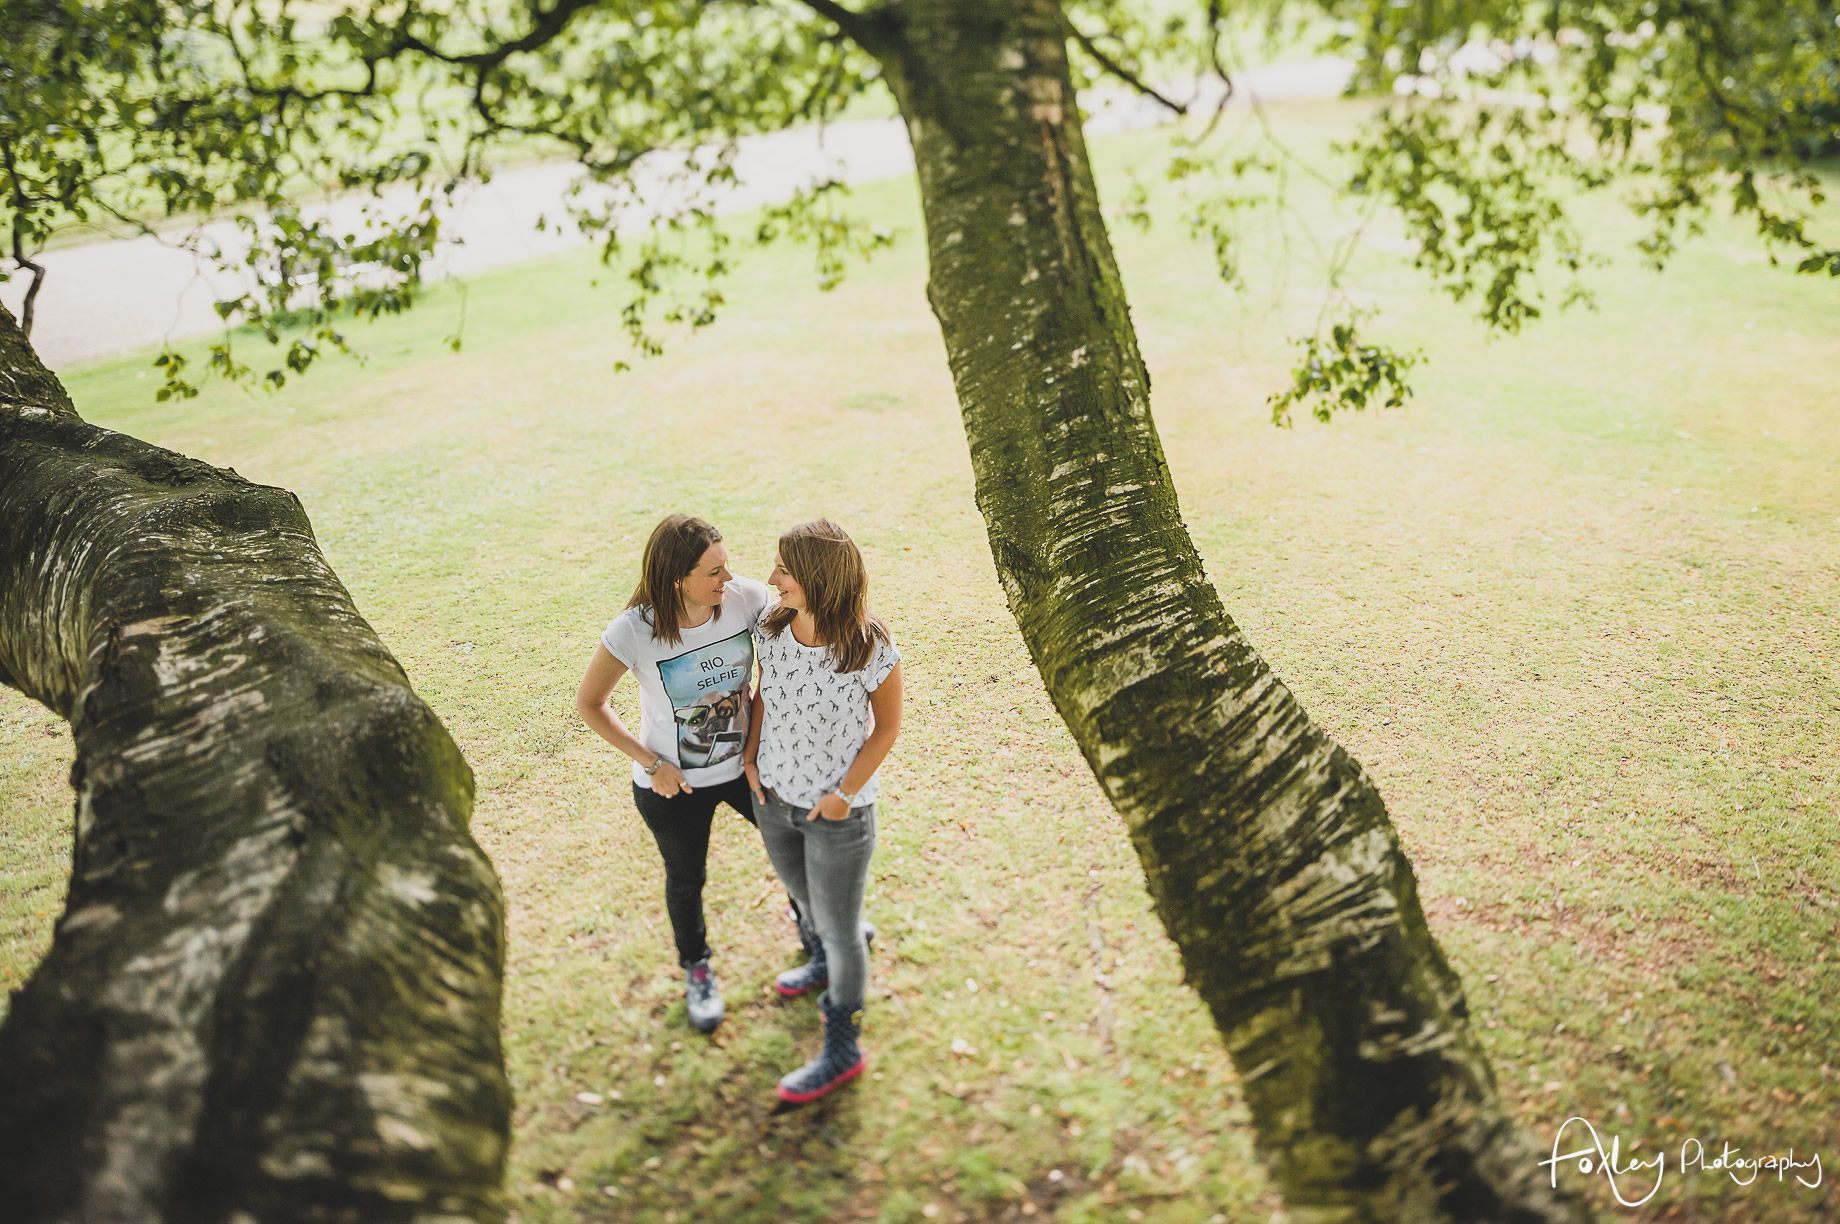 Fran-and-Eli-Pre-Wedding-Shoot-at-Heaton-Park-010